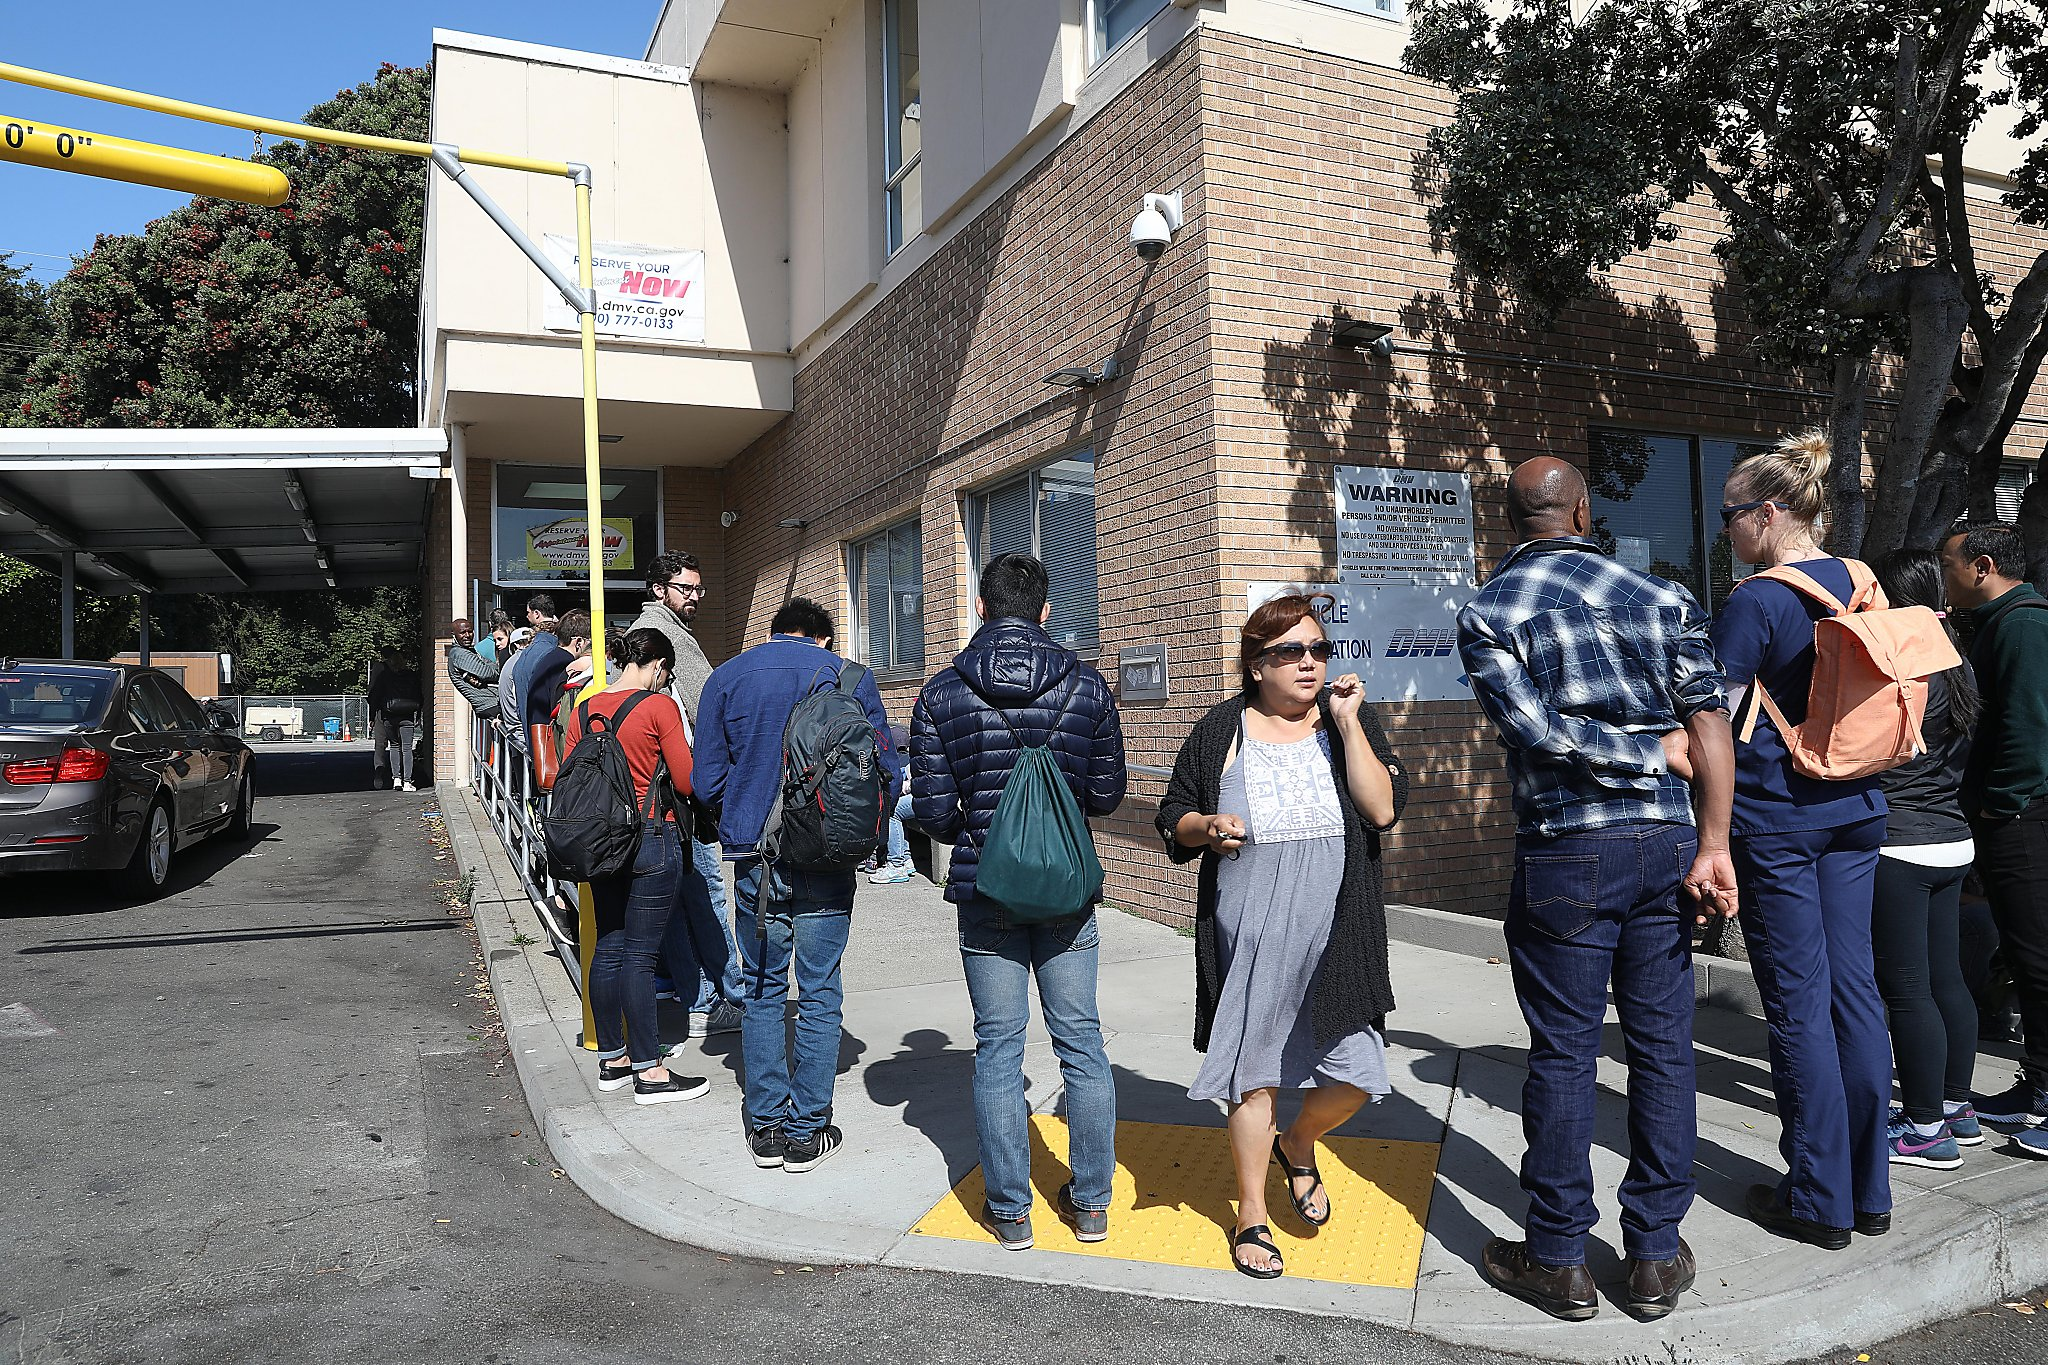 California Dmv Records >> The DMV says wait times in California have dropped steeply. Here's why - SFGate